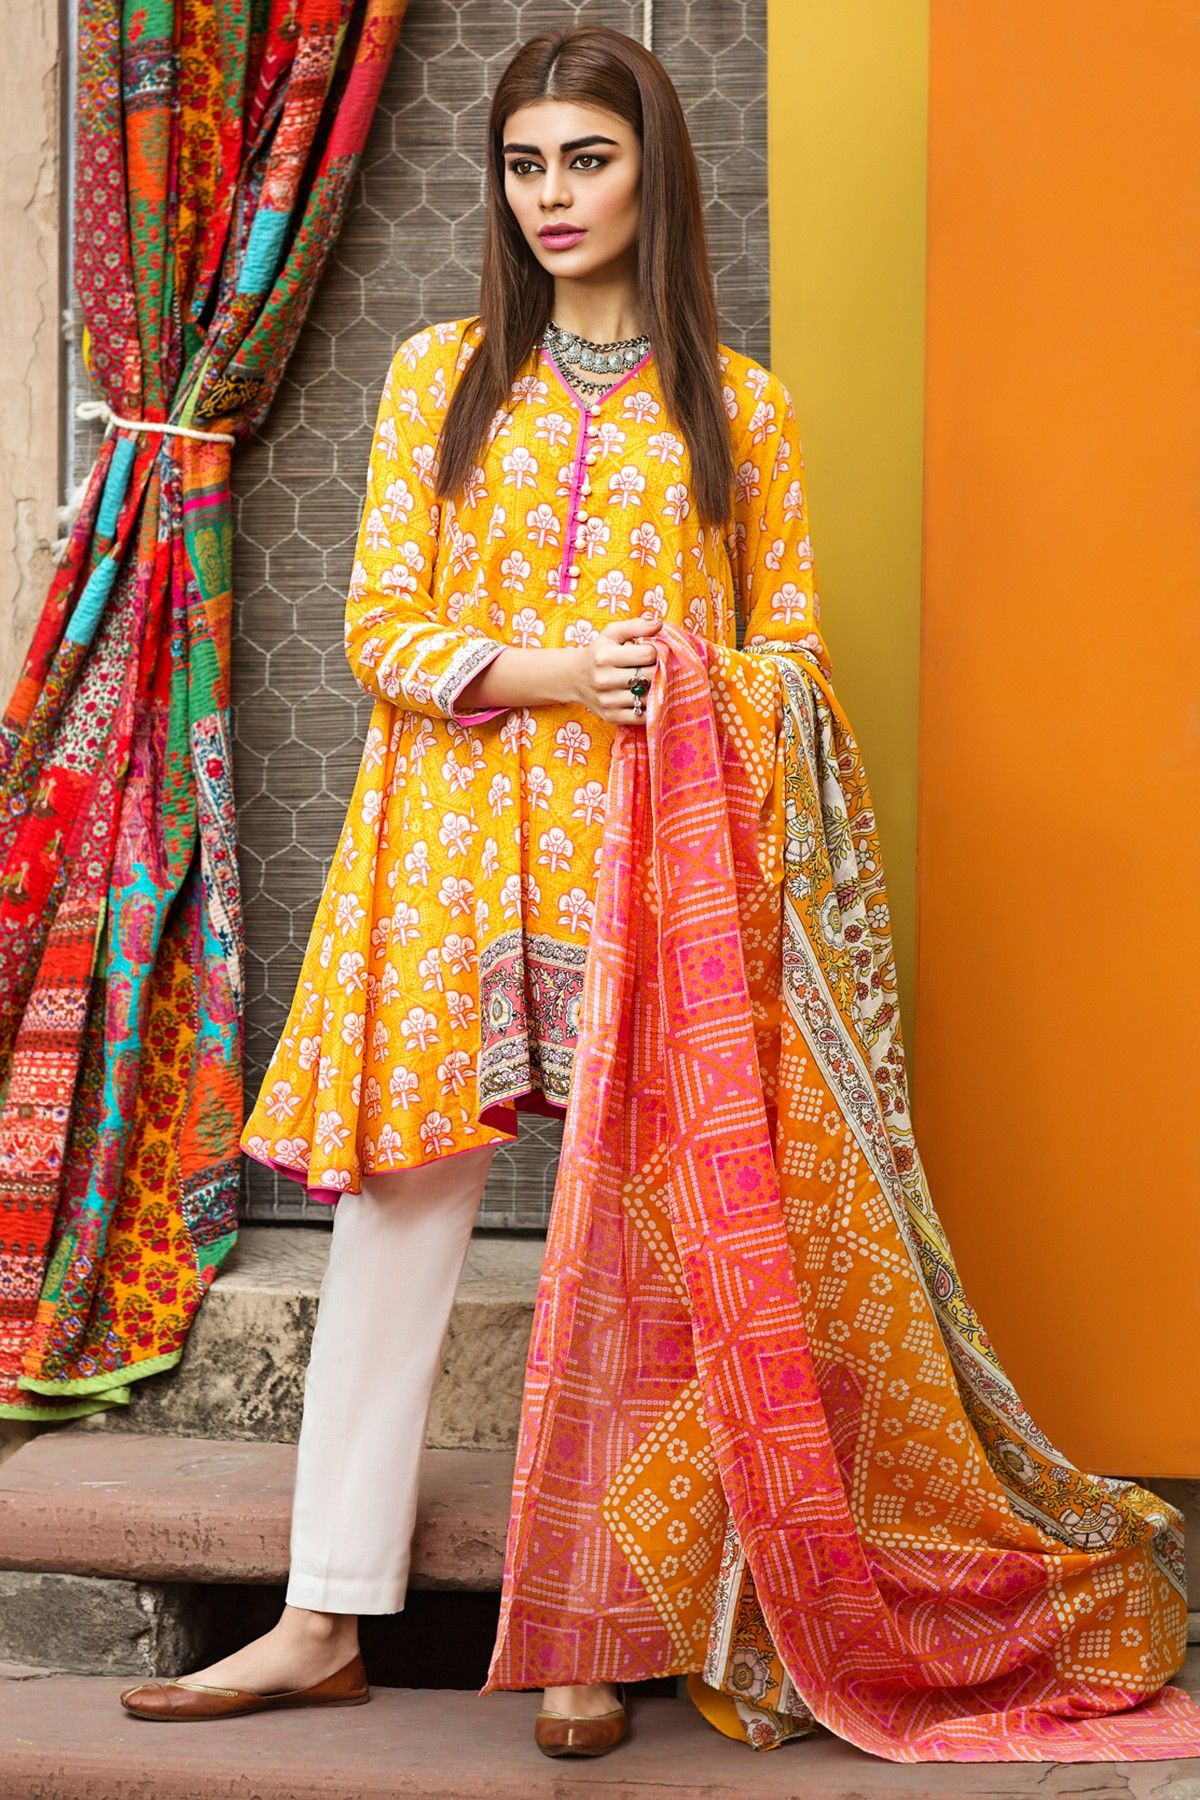 Khaadi Latest Summer Lawn Dresses Designs Collection 2017-2018 ...